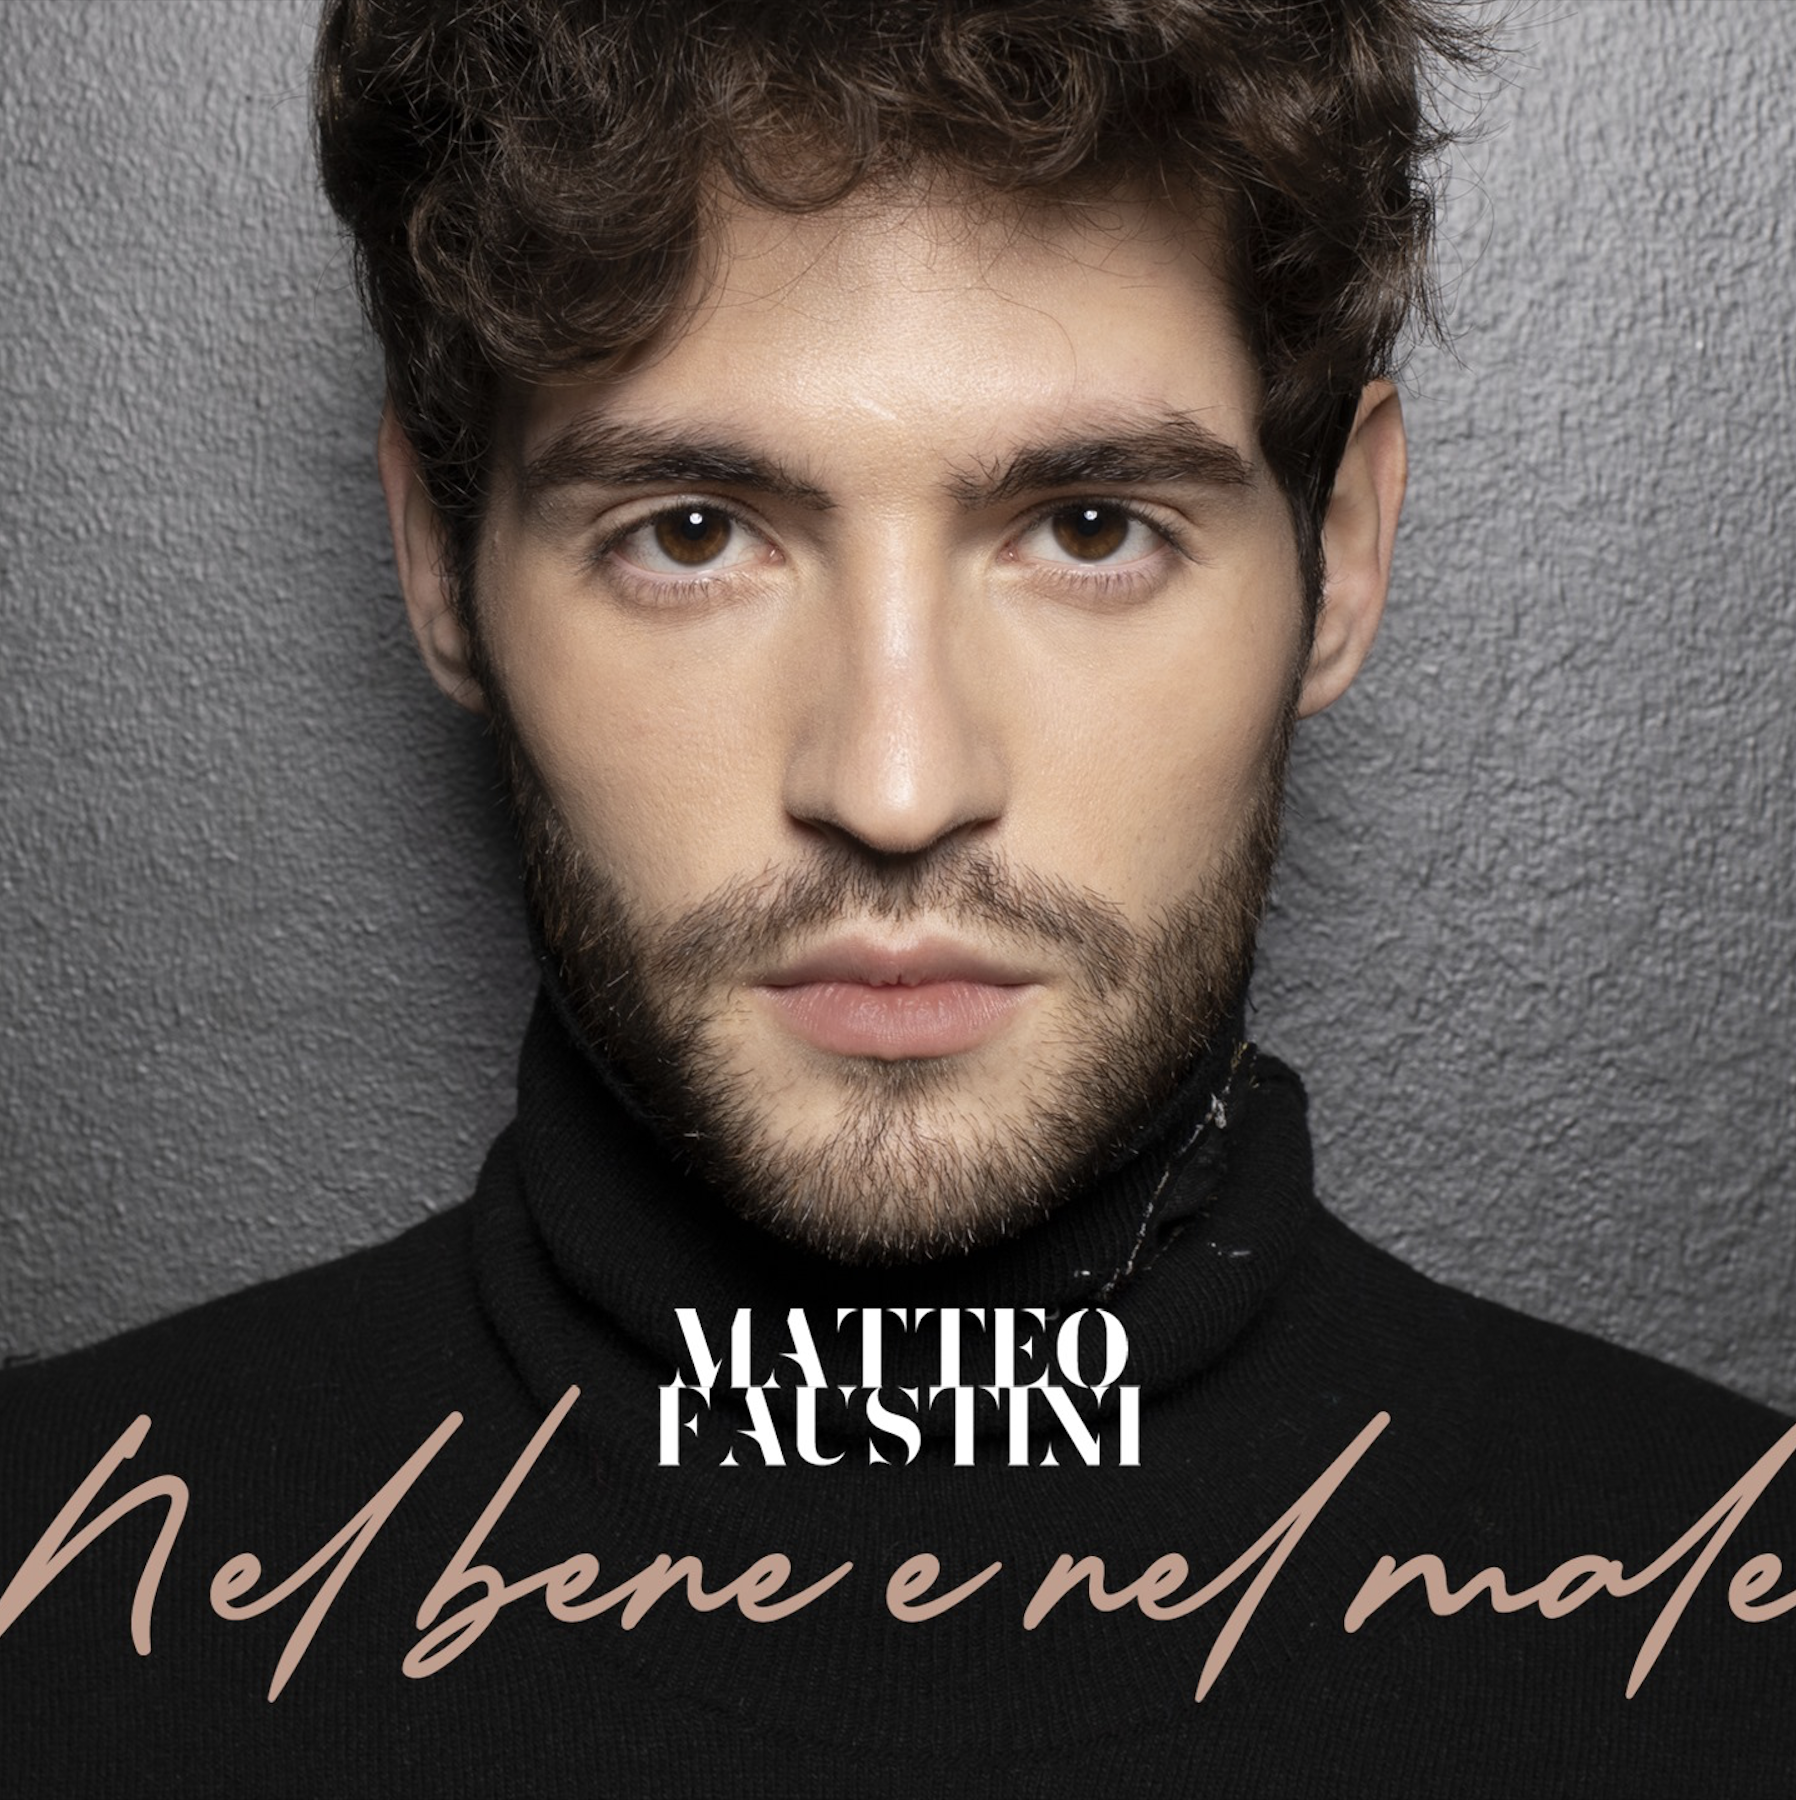 Matteo Faustini - single cover